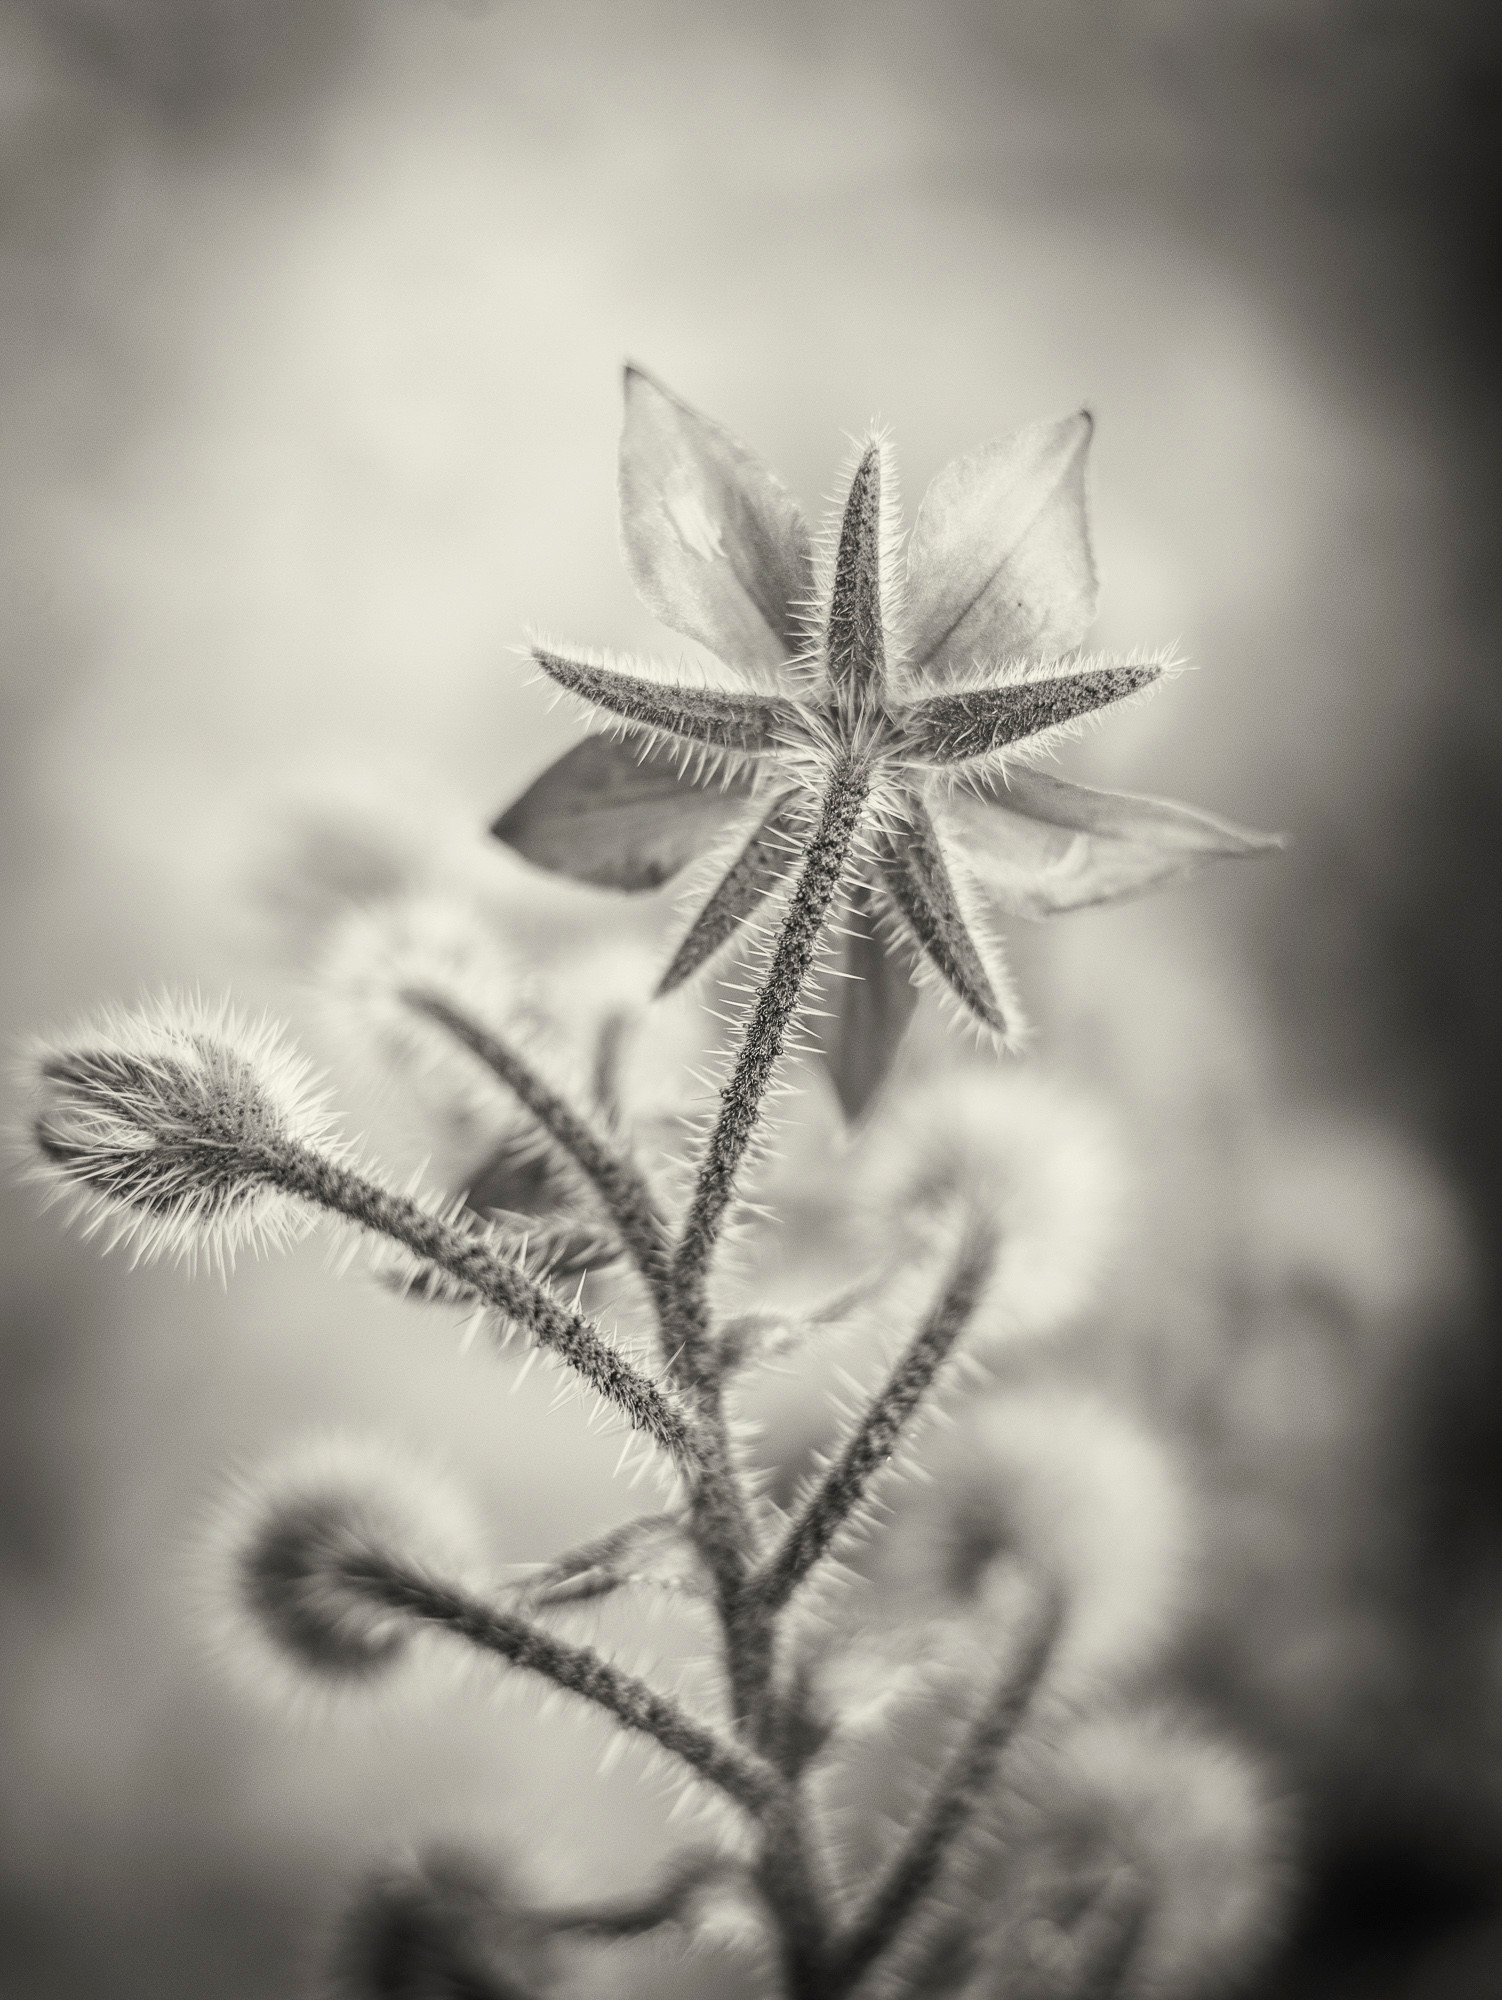 Siddho-Photography-nature-BW-1.jpg